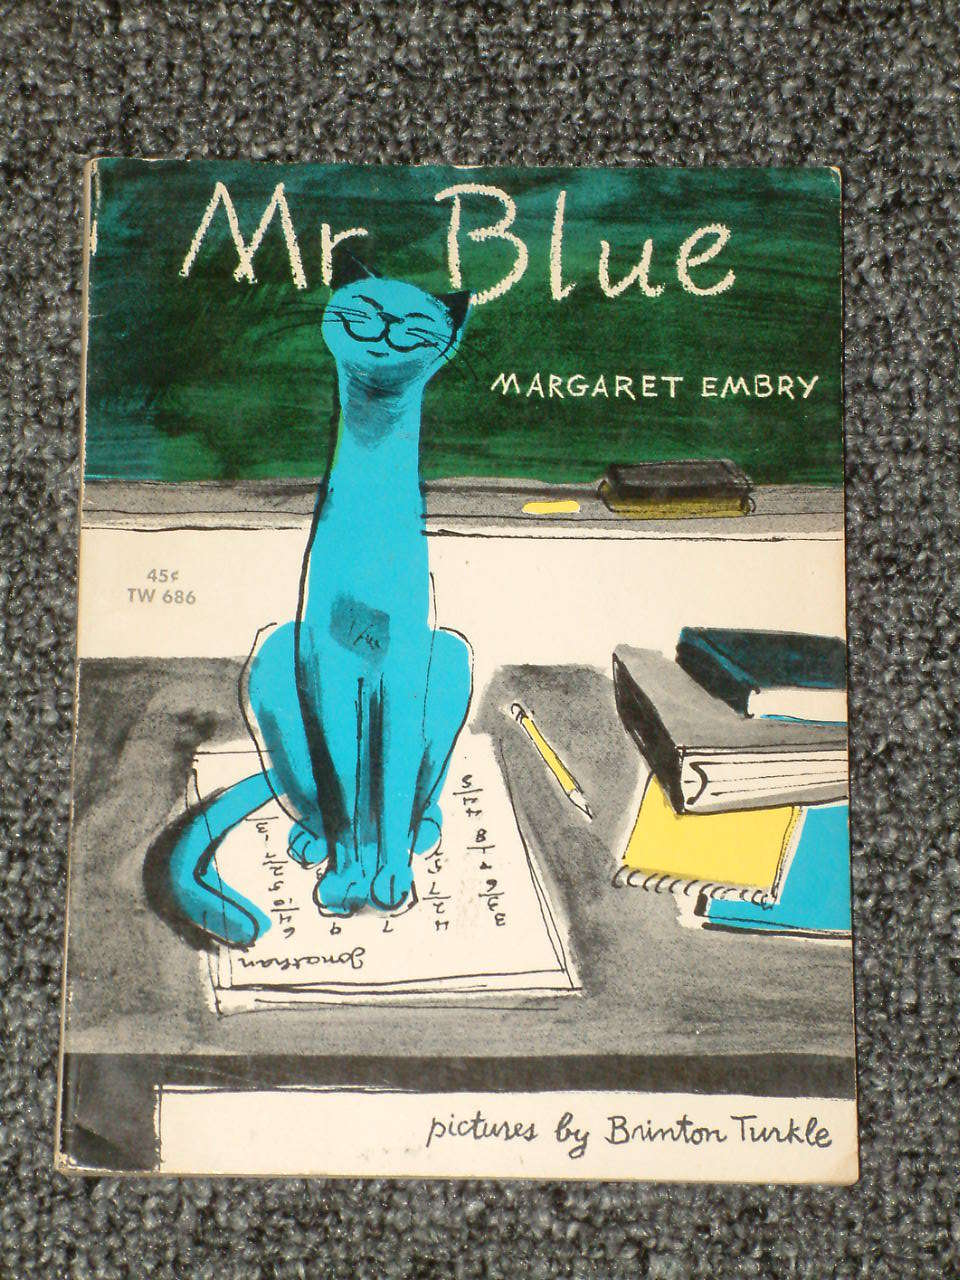 Mr. Blue by Margaret Embry and Brinton Turkle